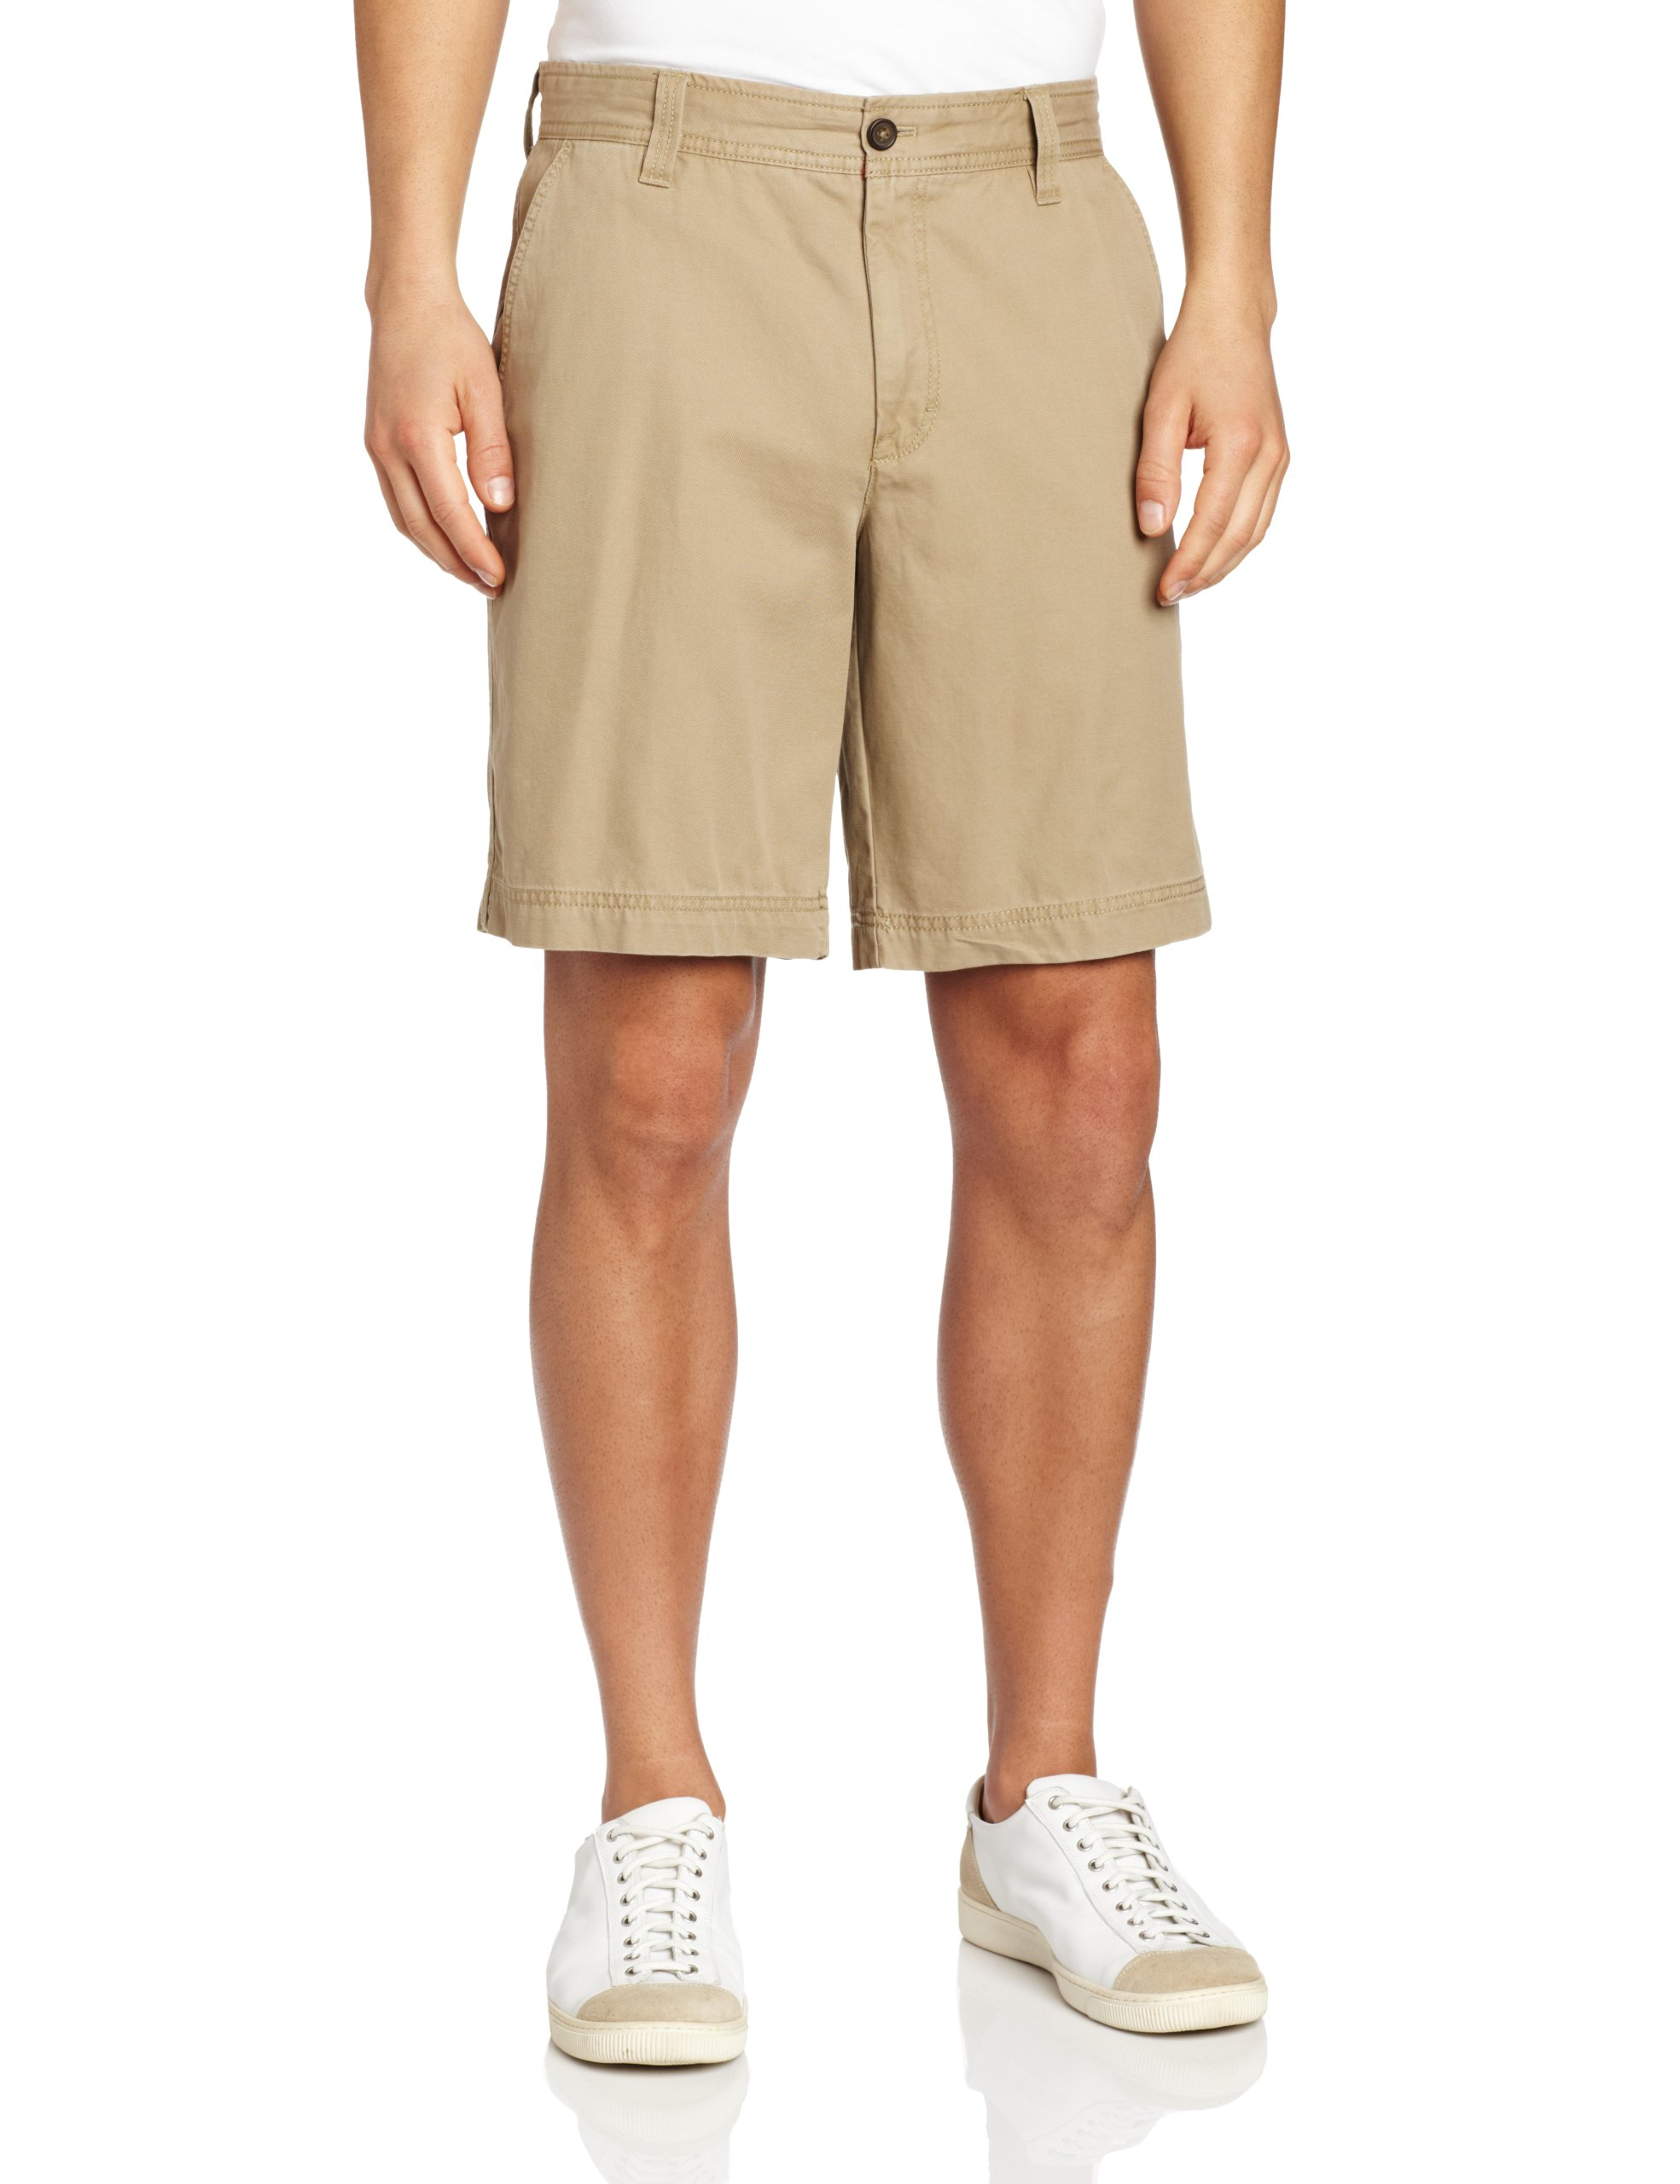 IZOD Men's Saltwater Flat Front Short, True Cedarwood Khaki, 36W